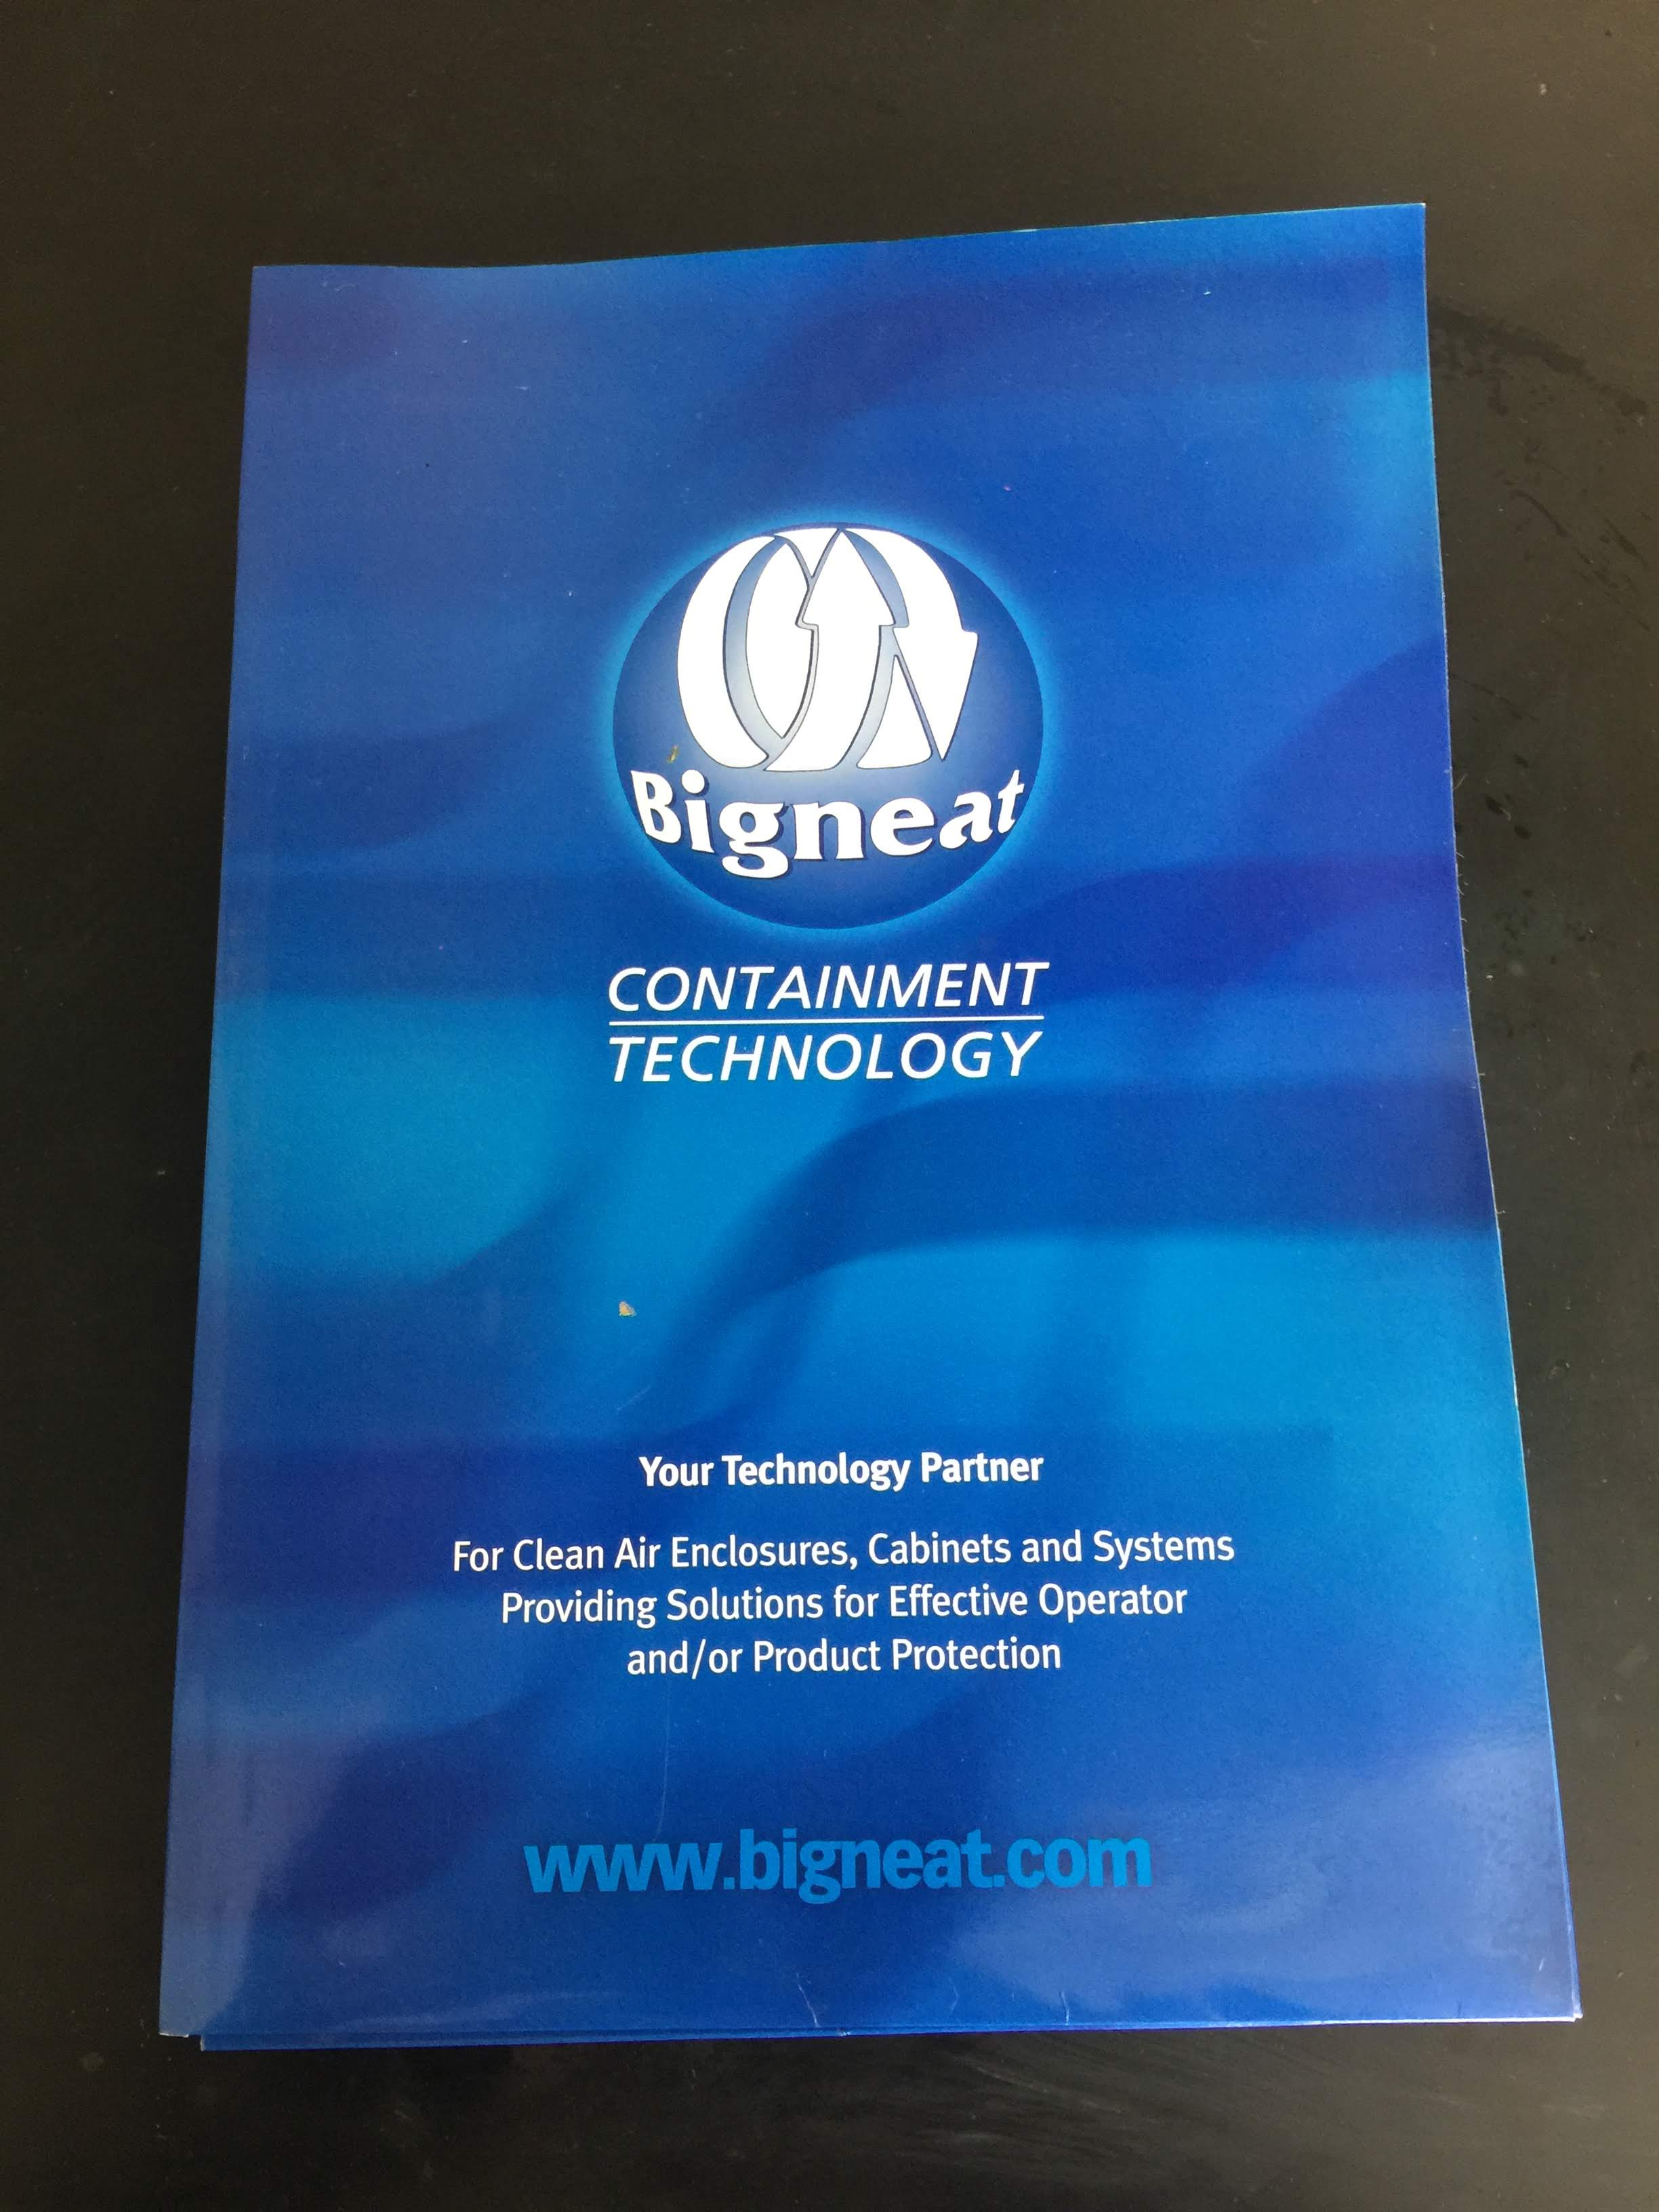 Bigneat Containment Technology Brochure